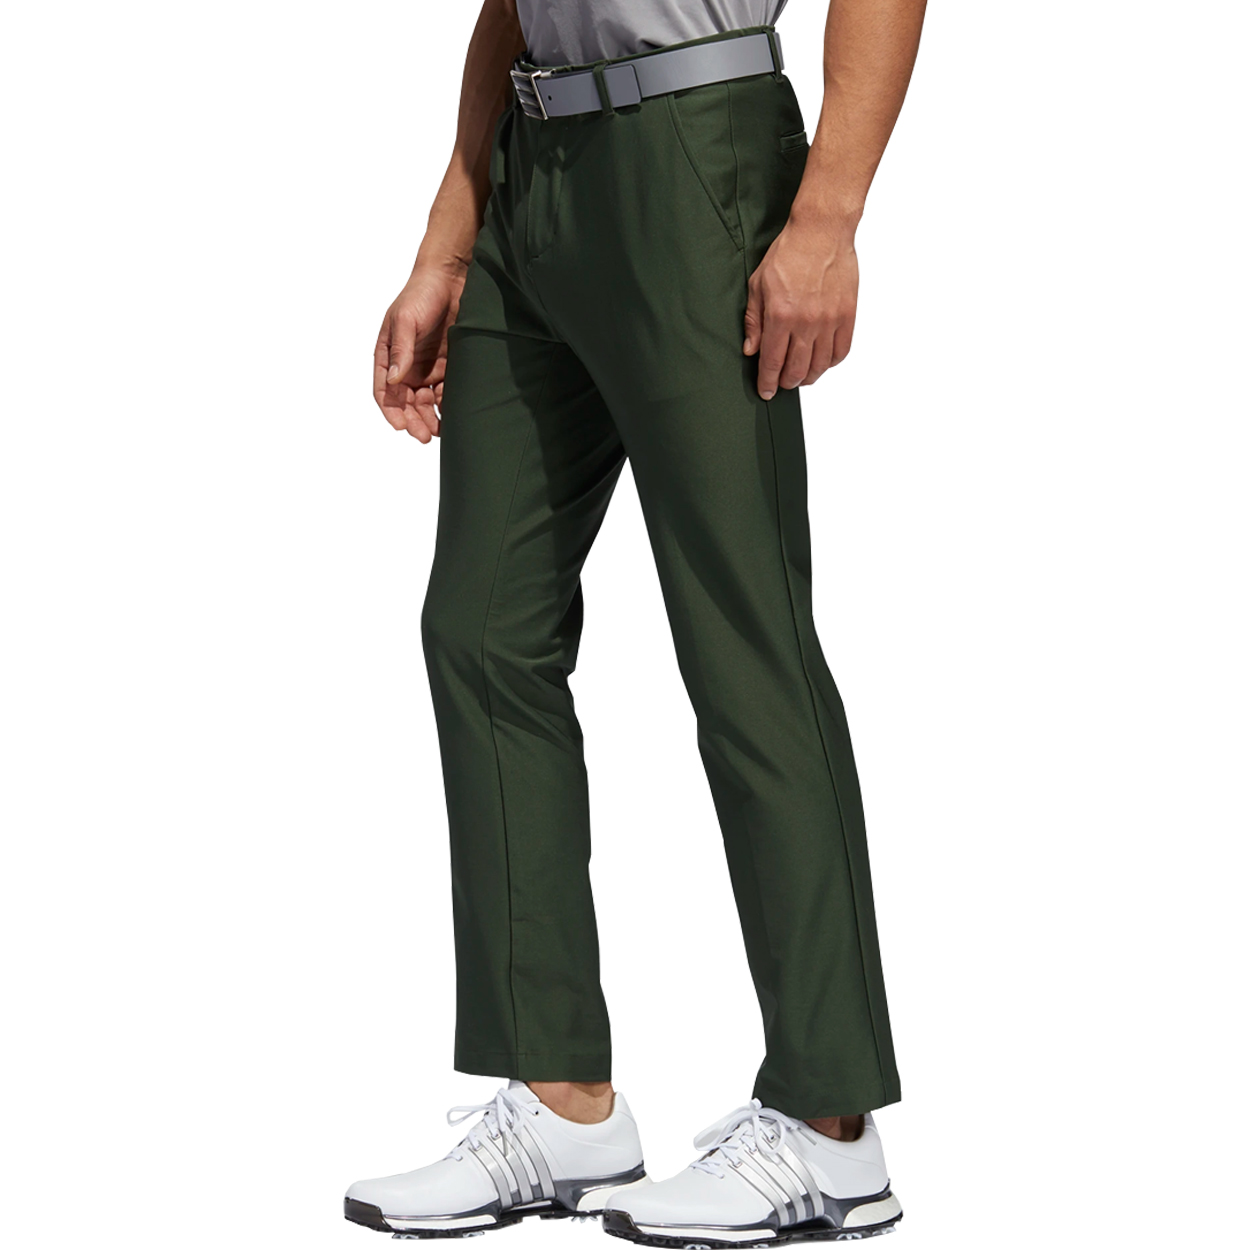 Adidas-Golf-Men-039-s-Ultimate-365-Classic-Pants-Brand-New thumbnail 7